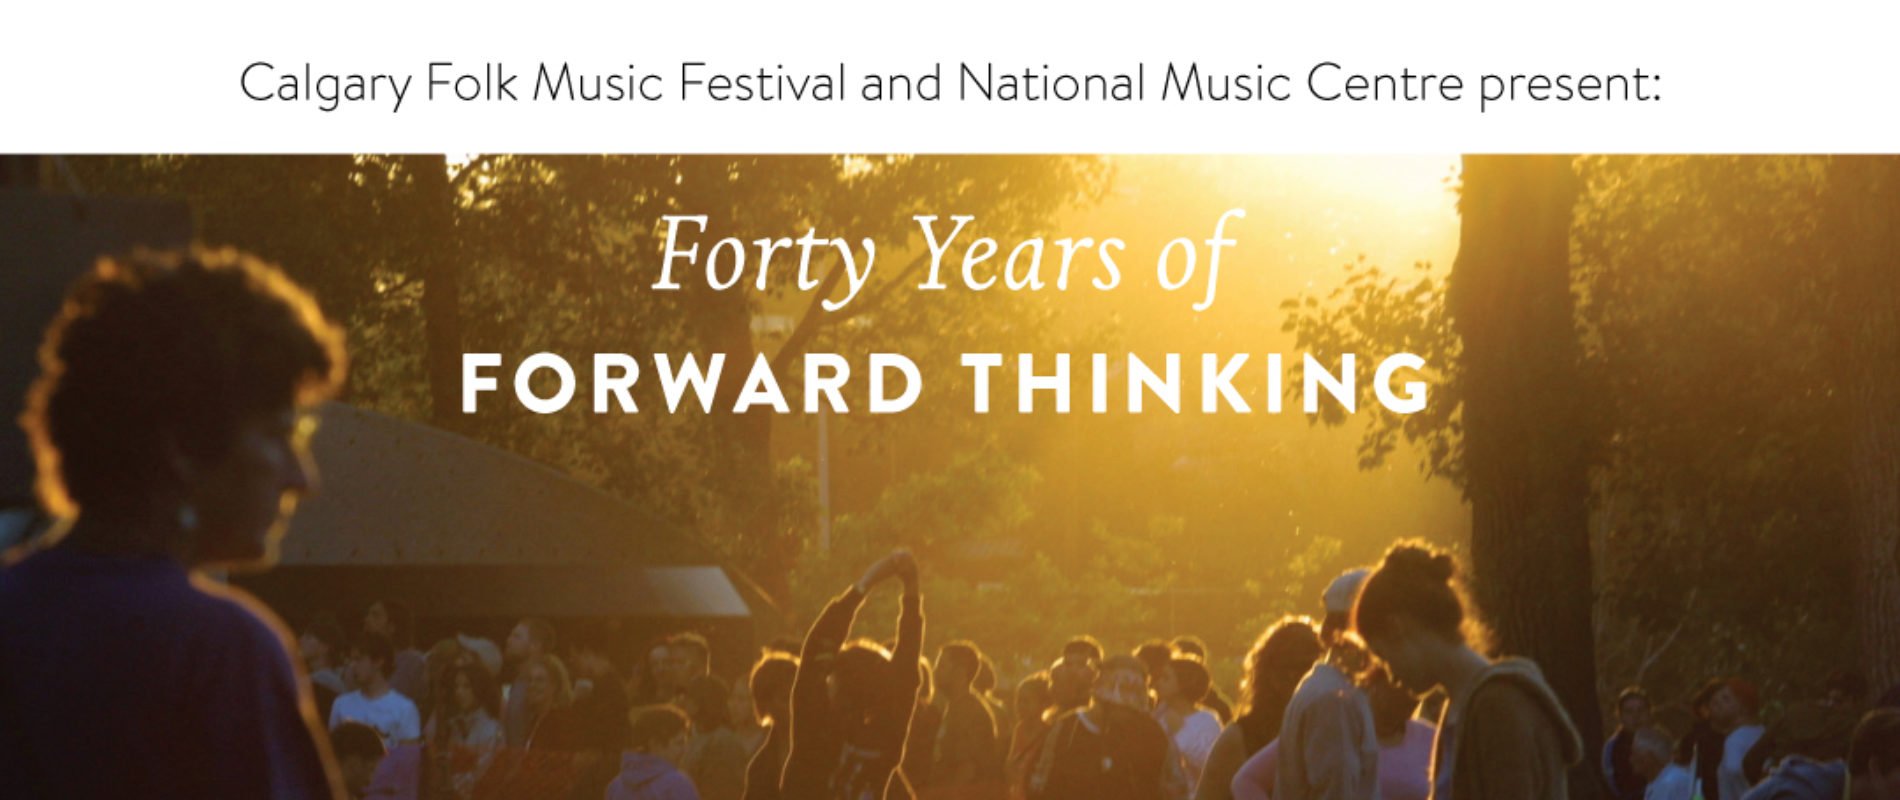 40 Years of Forward Thinking